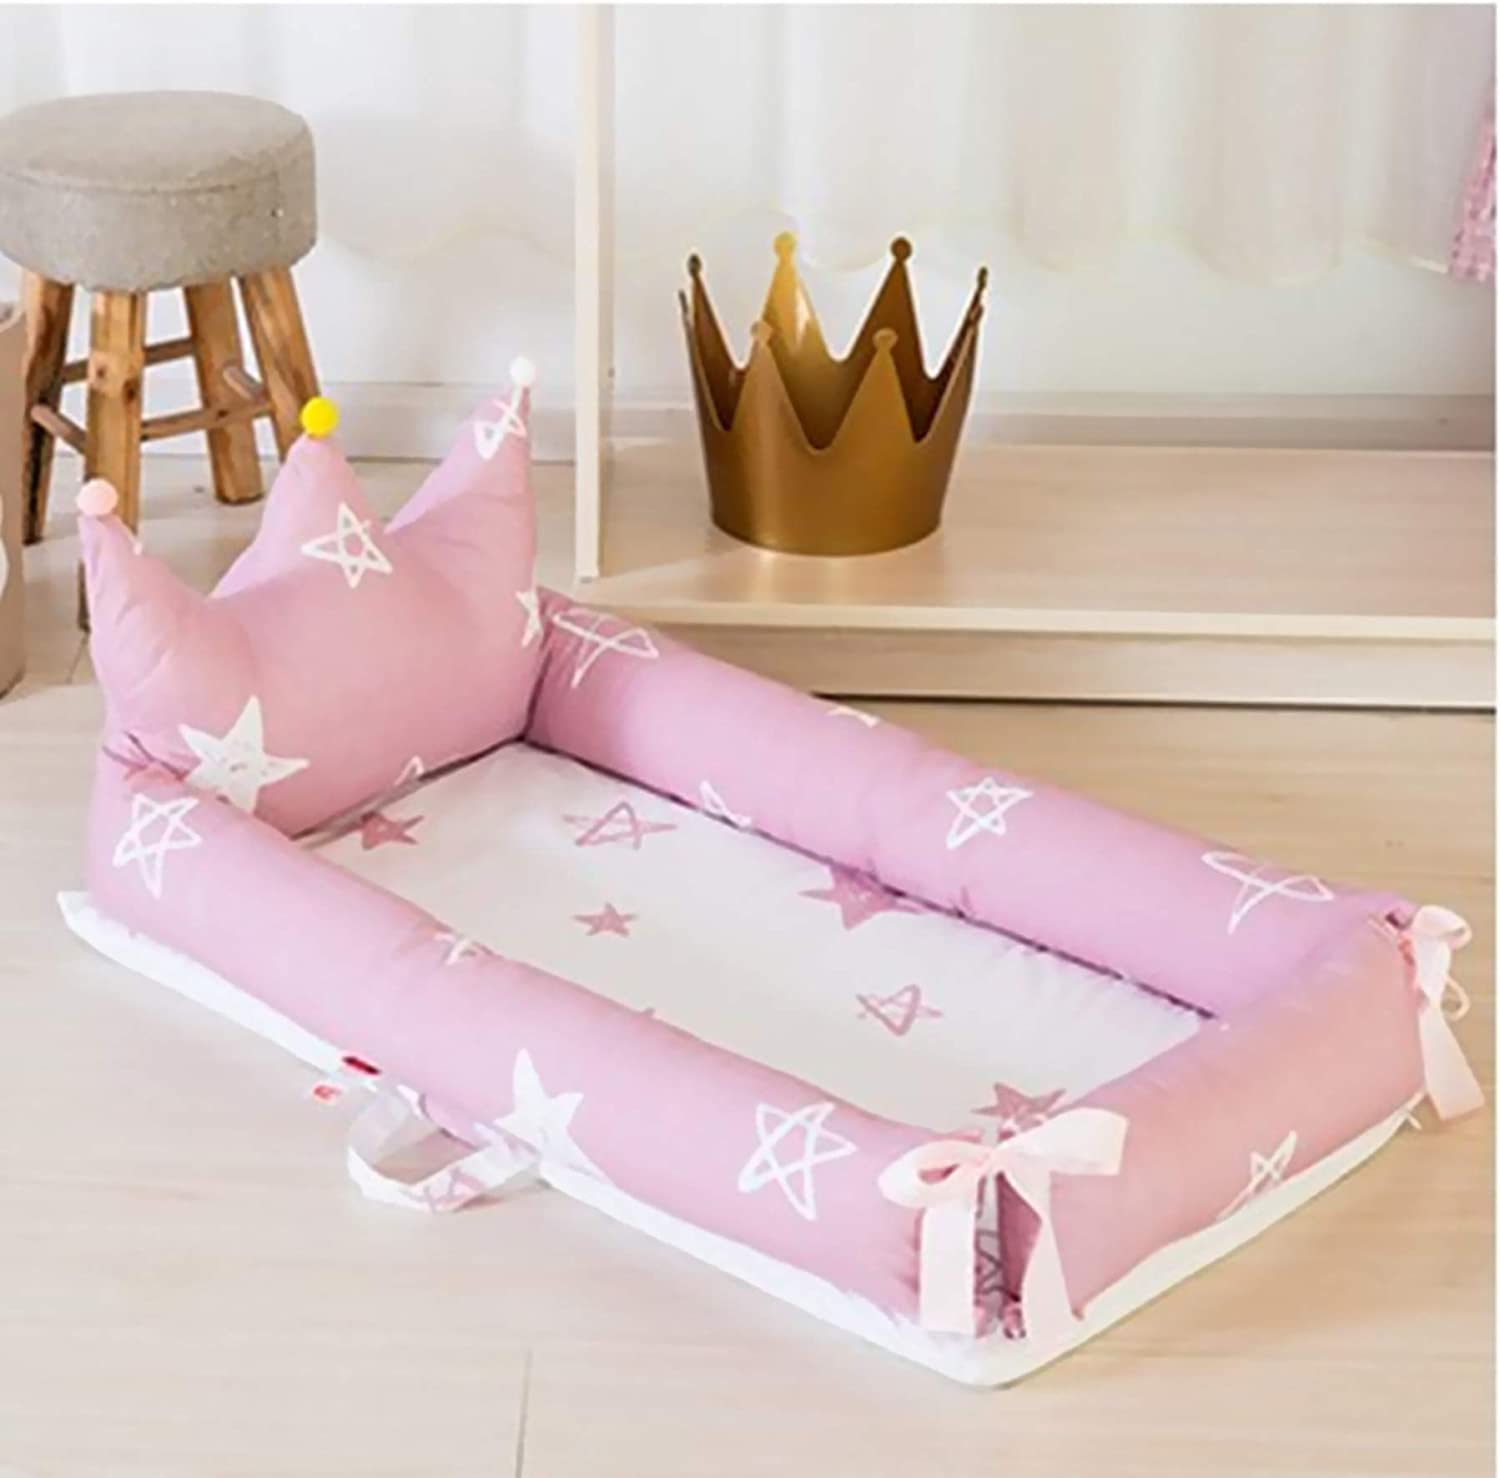 Ustide Baby Bassinet 100/% Cotton Crib Mattress for Bedroom Travel Green Point with Crown Baby Bassinet for Bed Soft Portable Crib for Bedroom Girls Boys Baby Nest with Quilt Pillow 3 Pieces